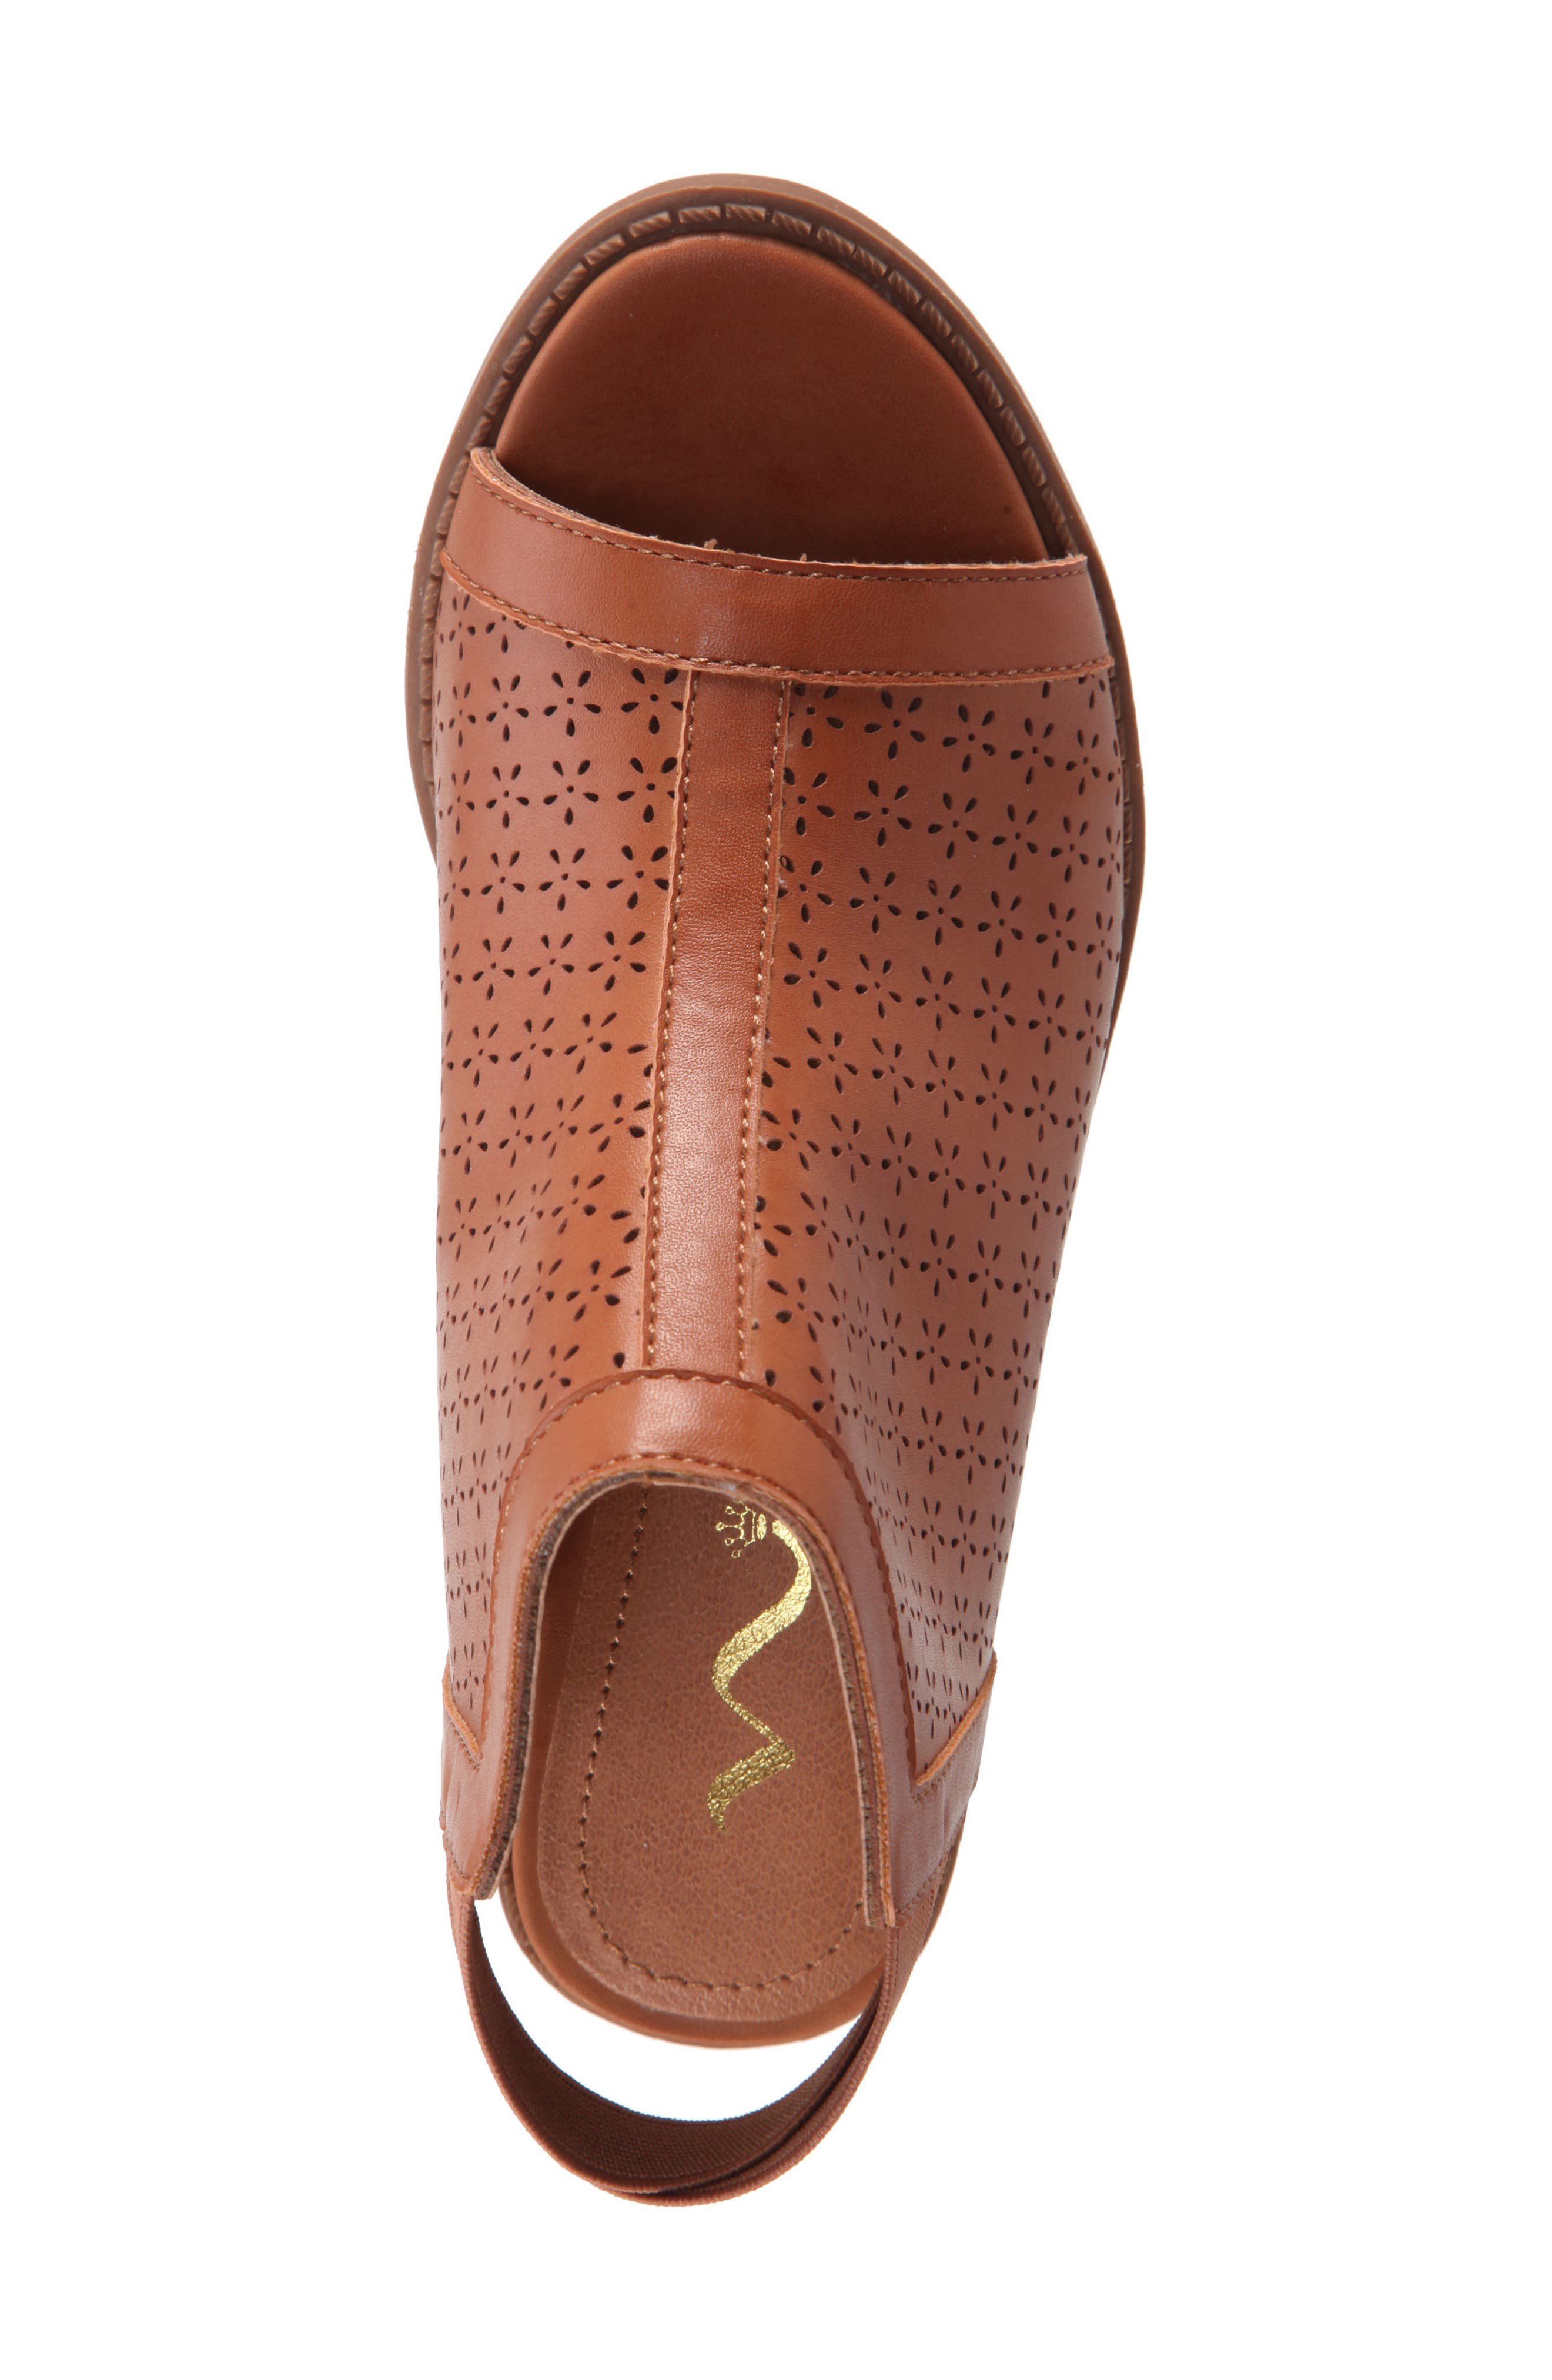 Maya Perforated Peep Toe Bootie,                             Alternate thumbnail 5, color,                             Tan Burnished